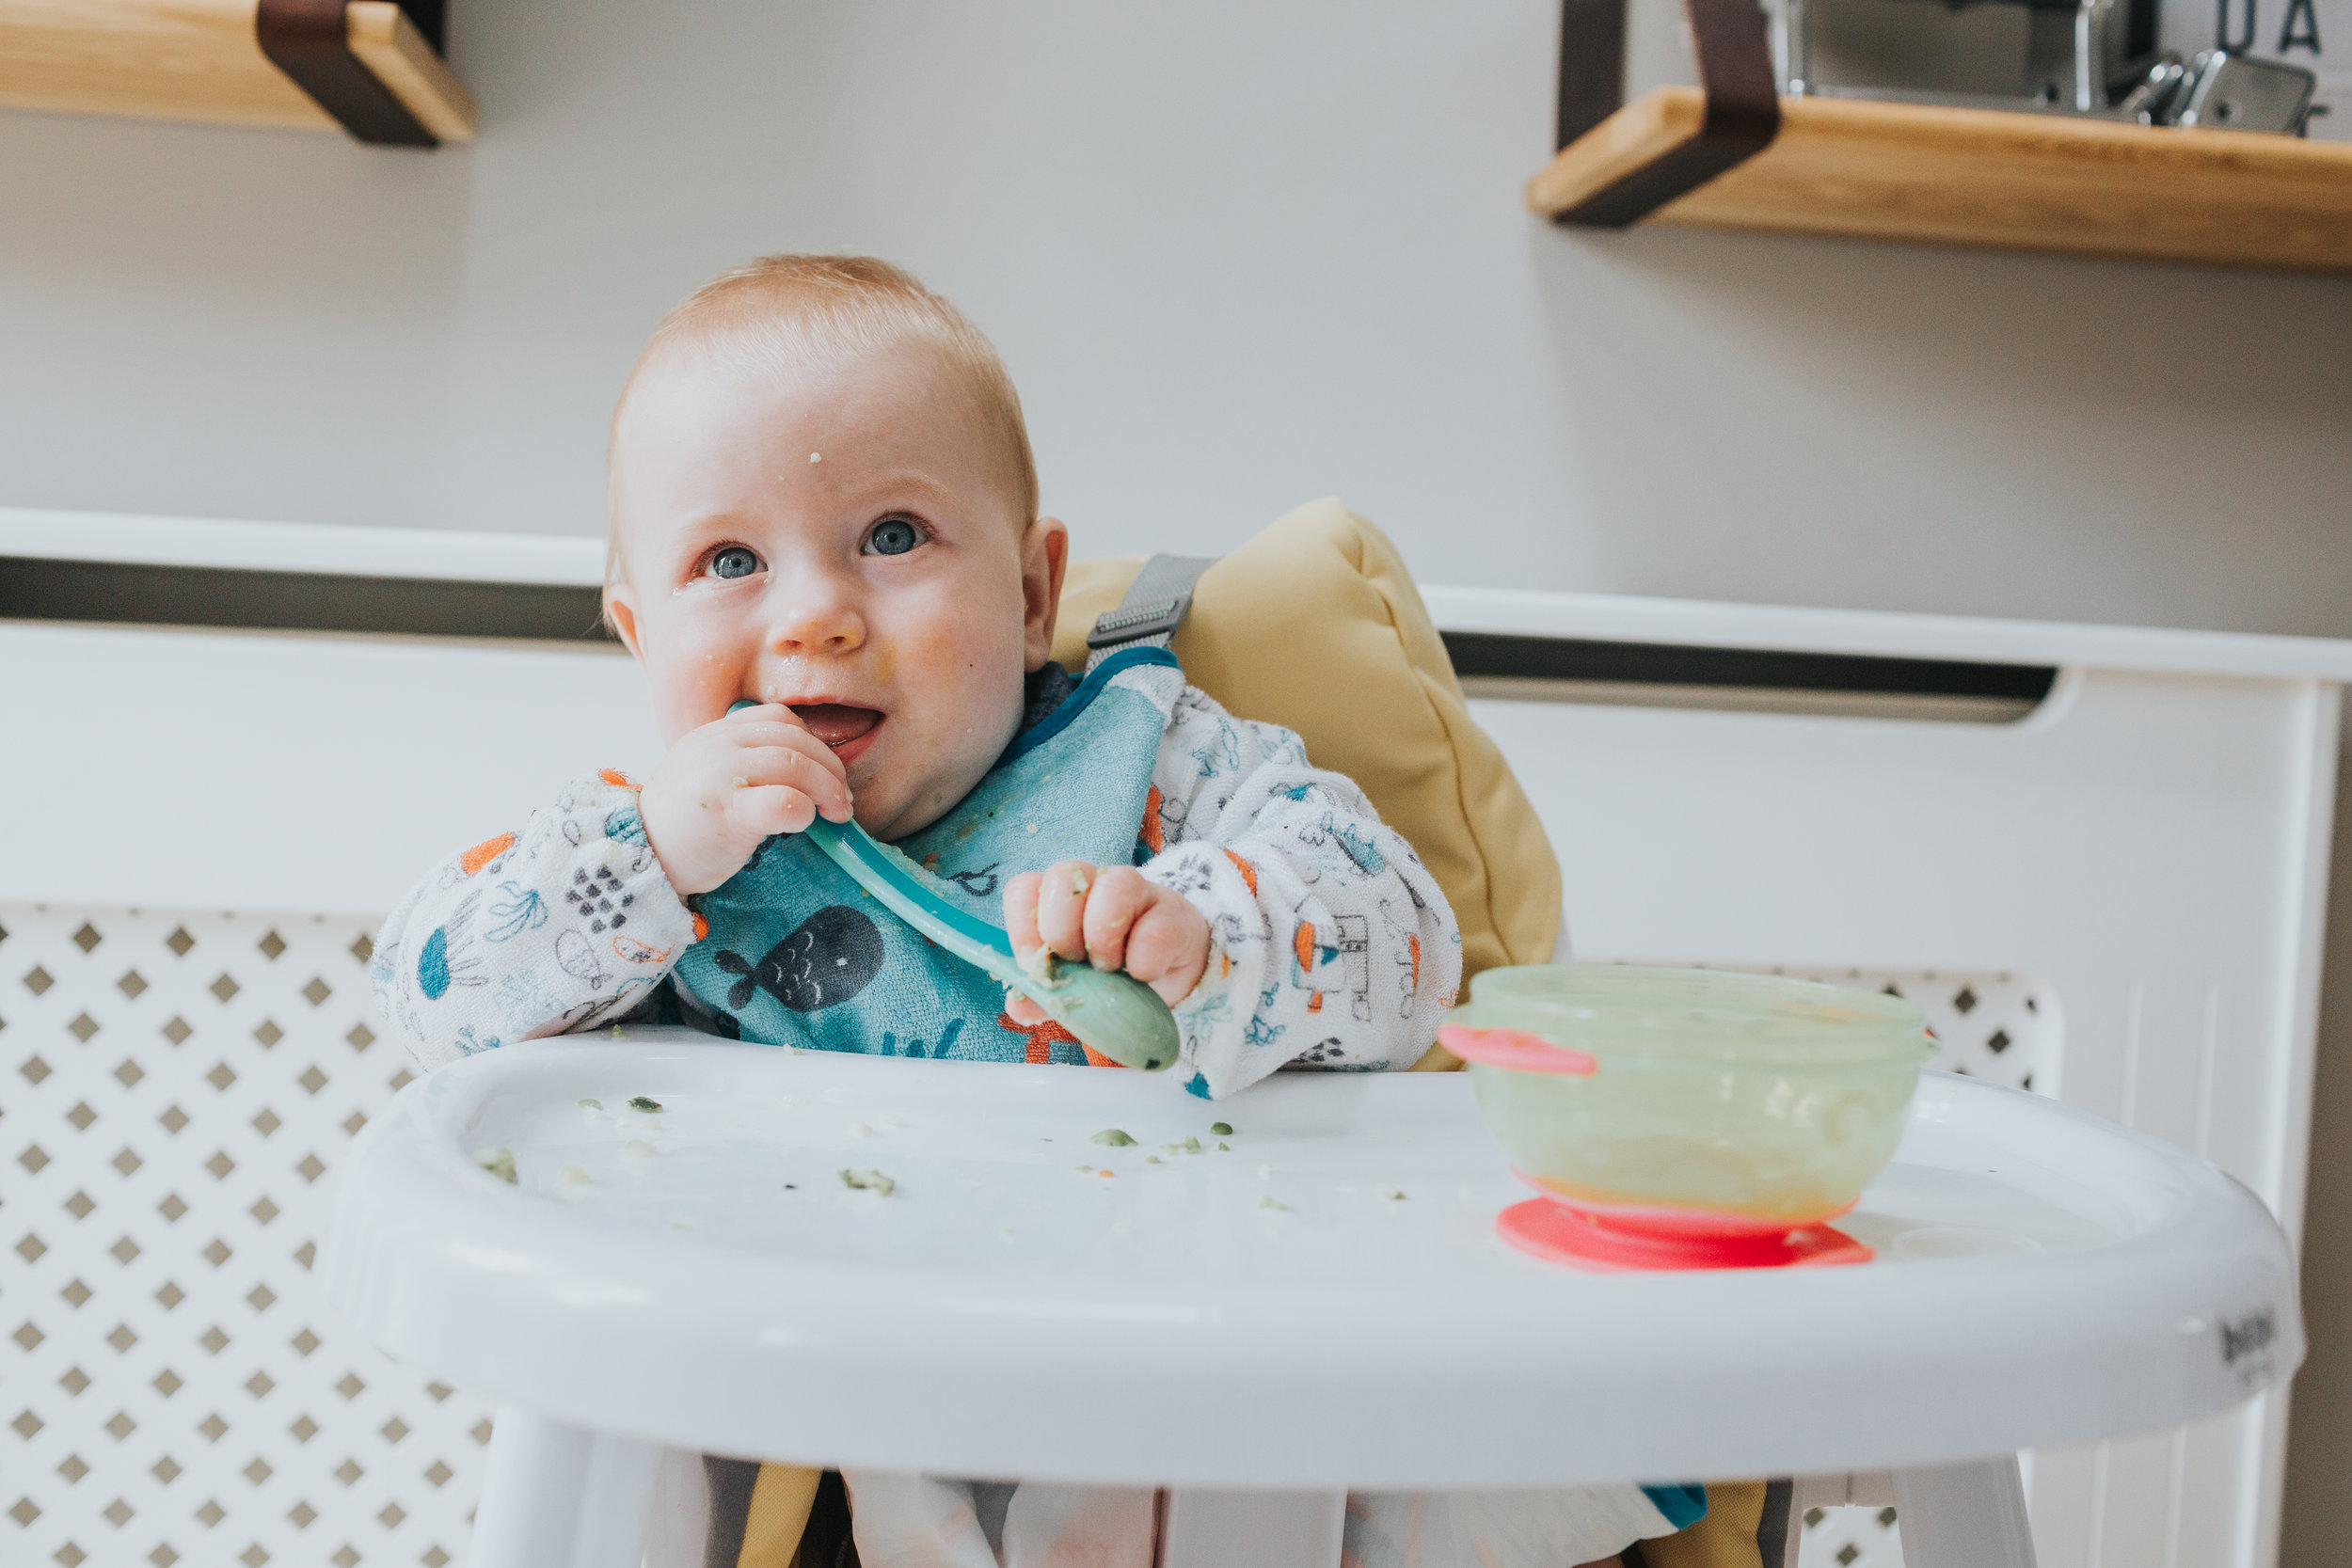 Baby smiles while holding spoon in her mouth.